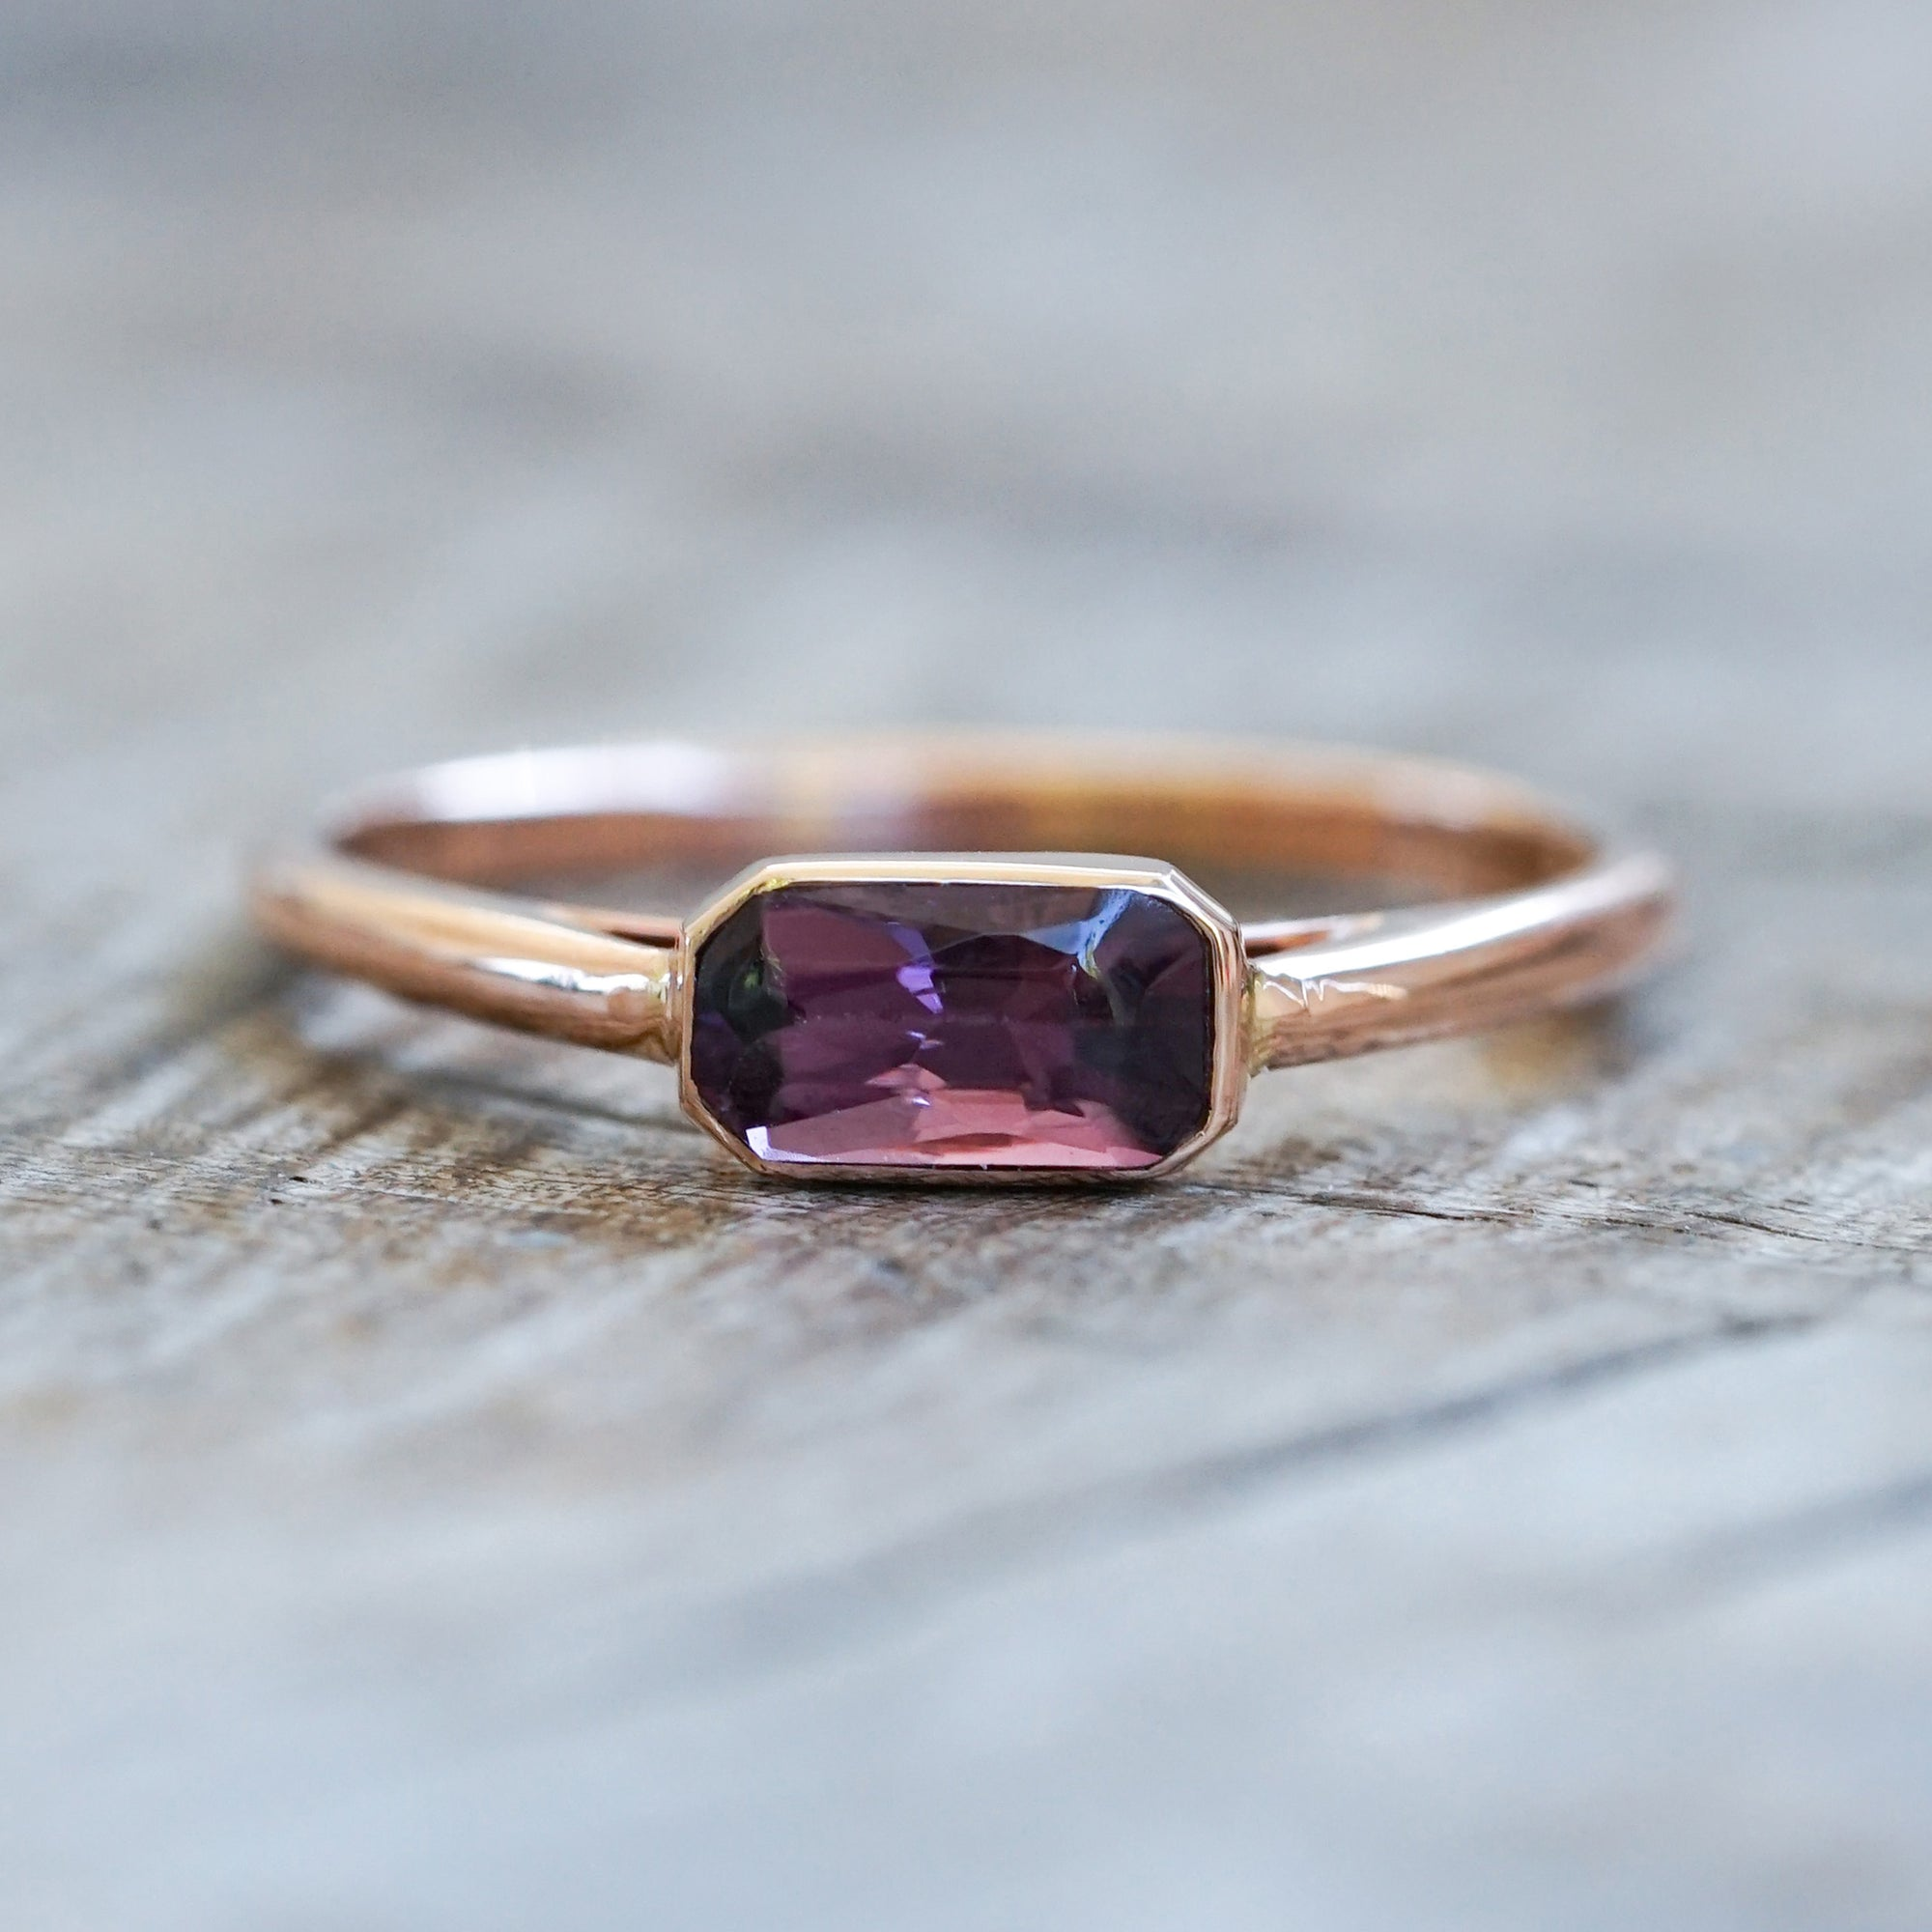 AA Meri Rectangular Ceylon Spinel Ring in Gold - Gardens of the Sun Jewelry